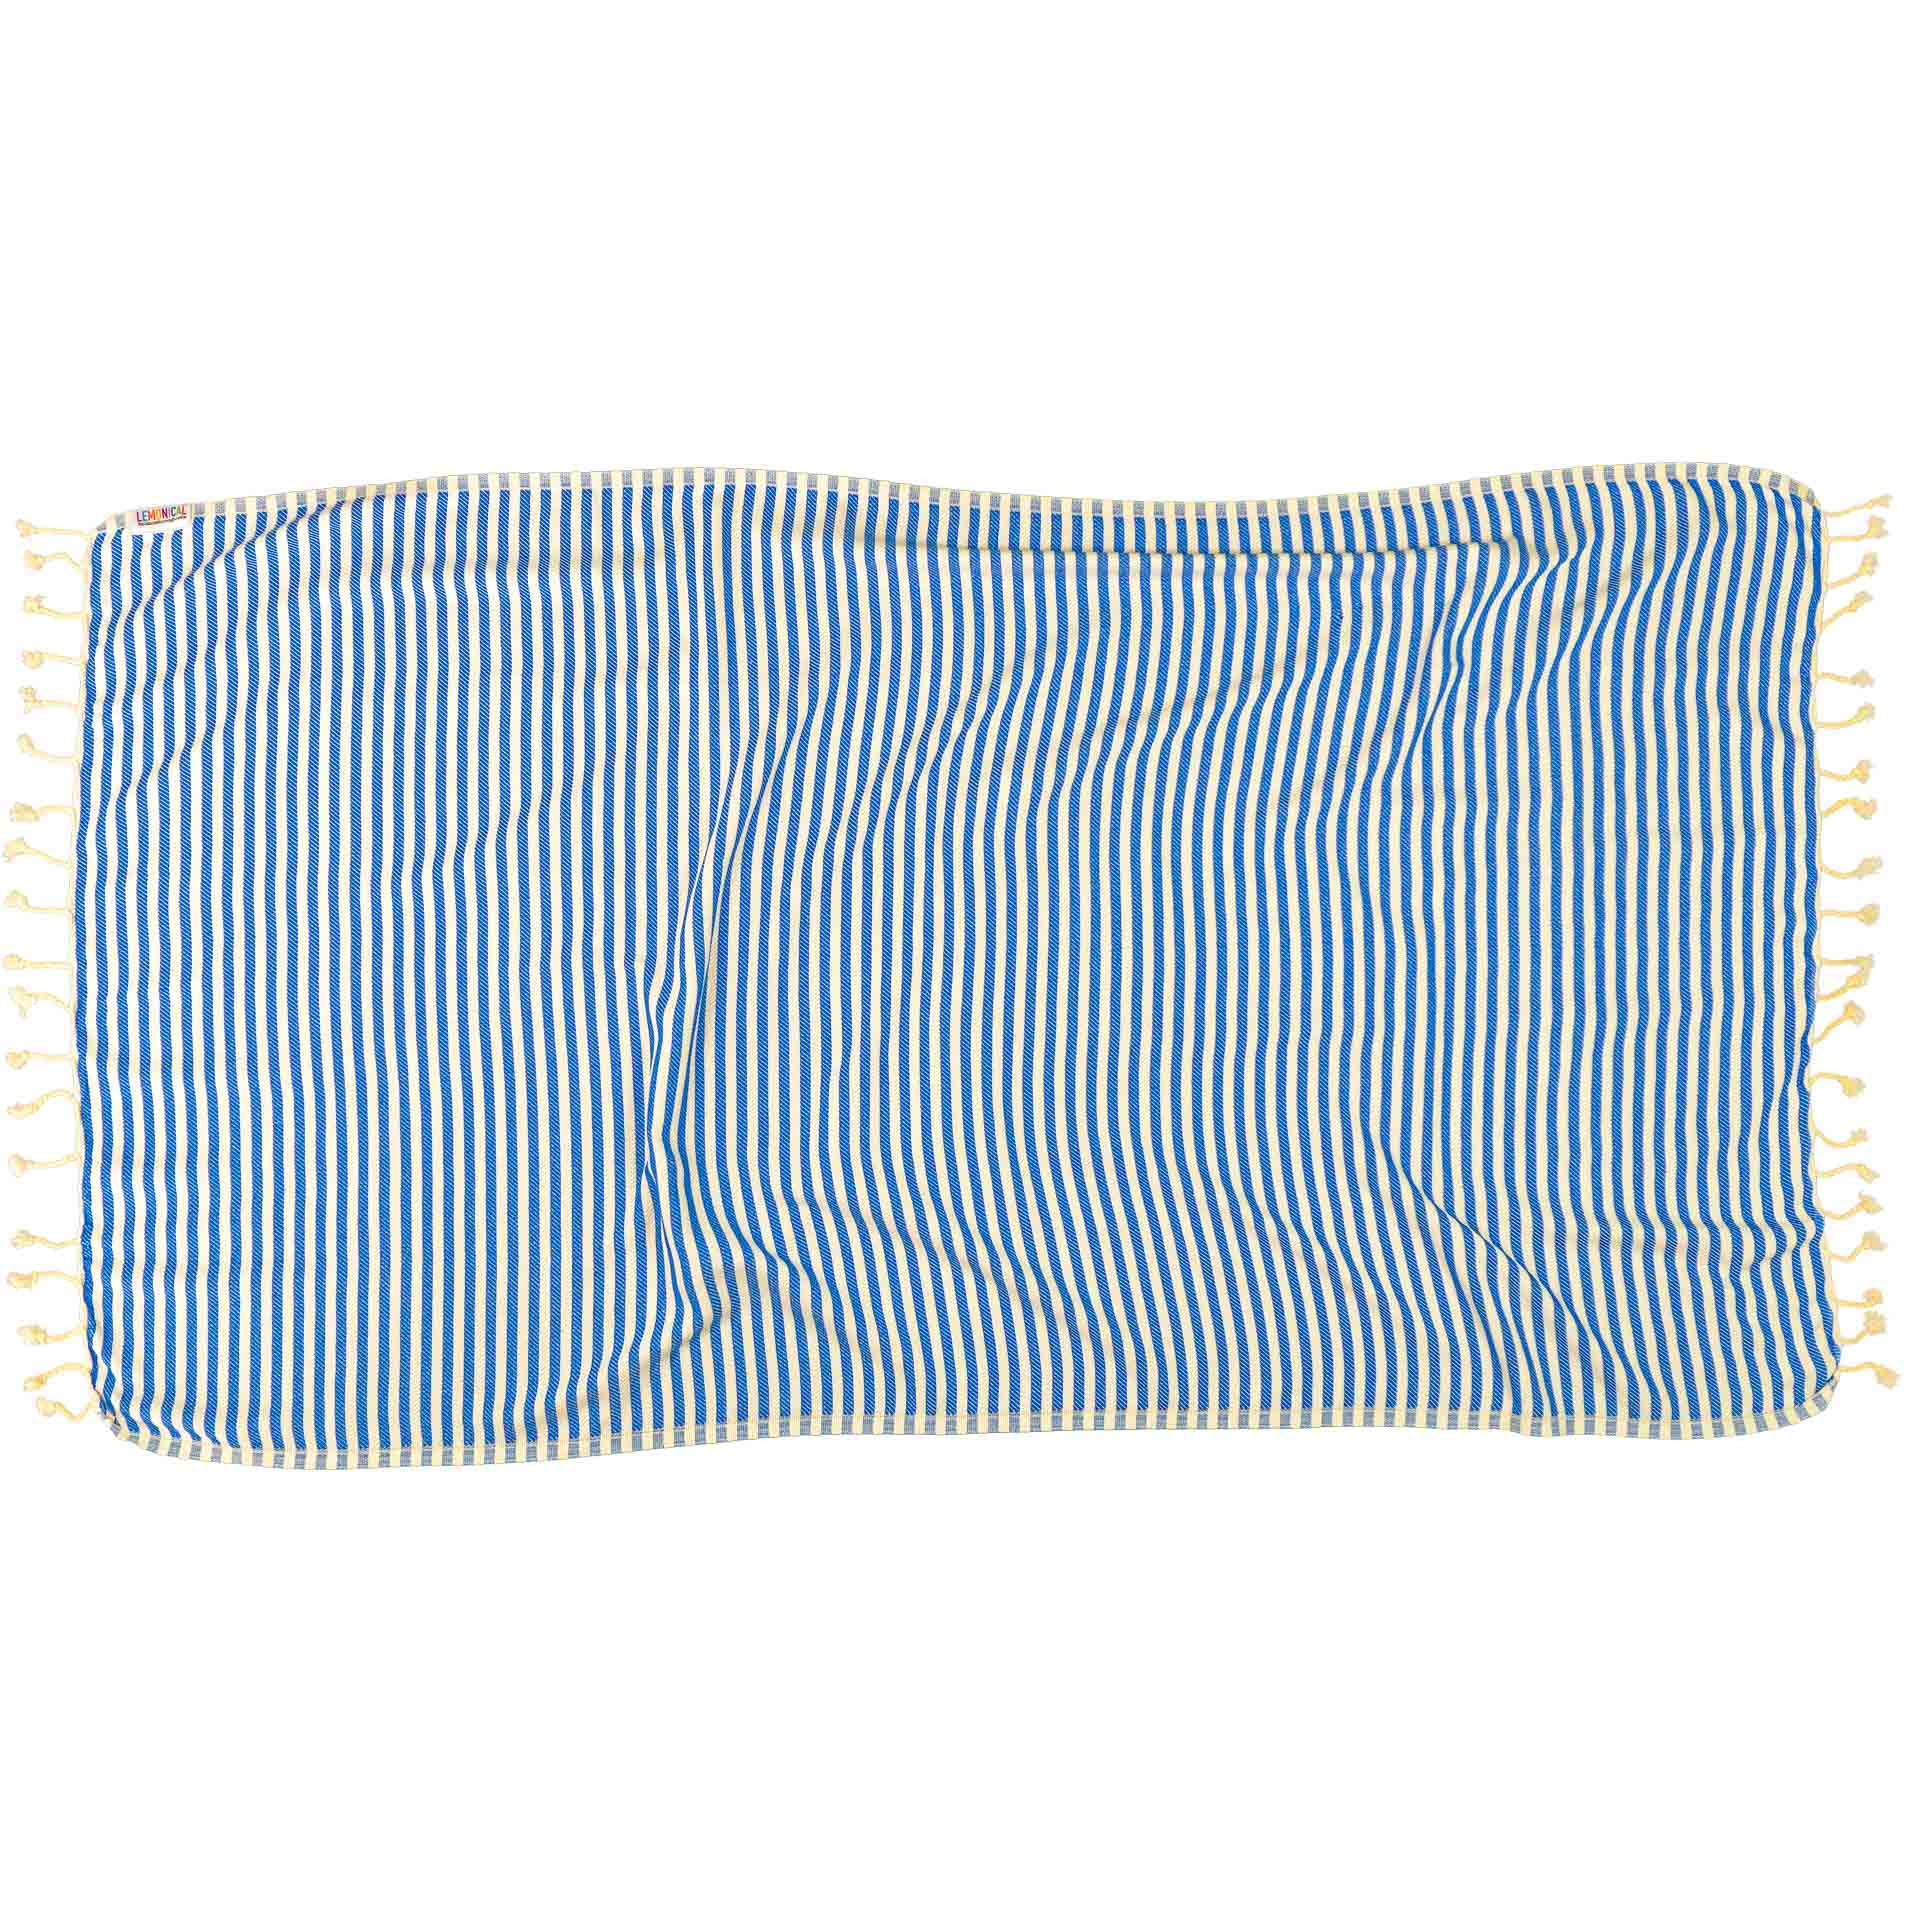 NAUTIC-BLUE-Towel-Lemonical-1